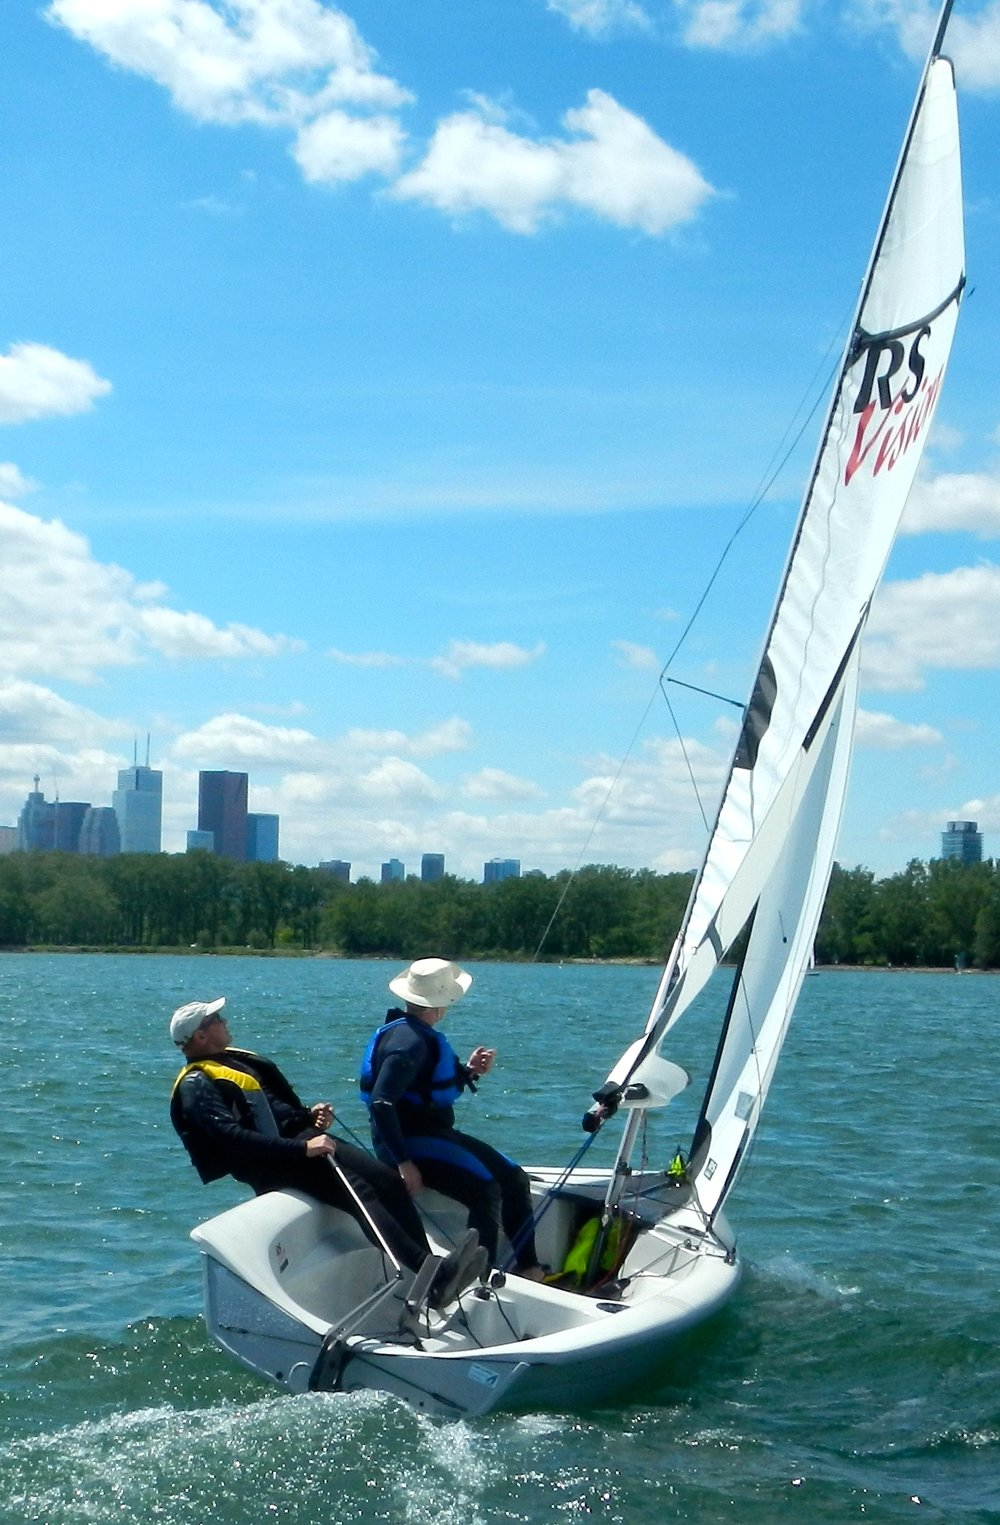 CANSail 3 - Go Pro - Take it to the next level - Advanced sailing skills at Sailing Fanatics Toronto